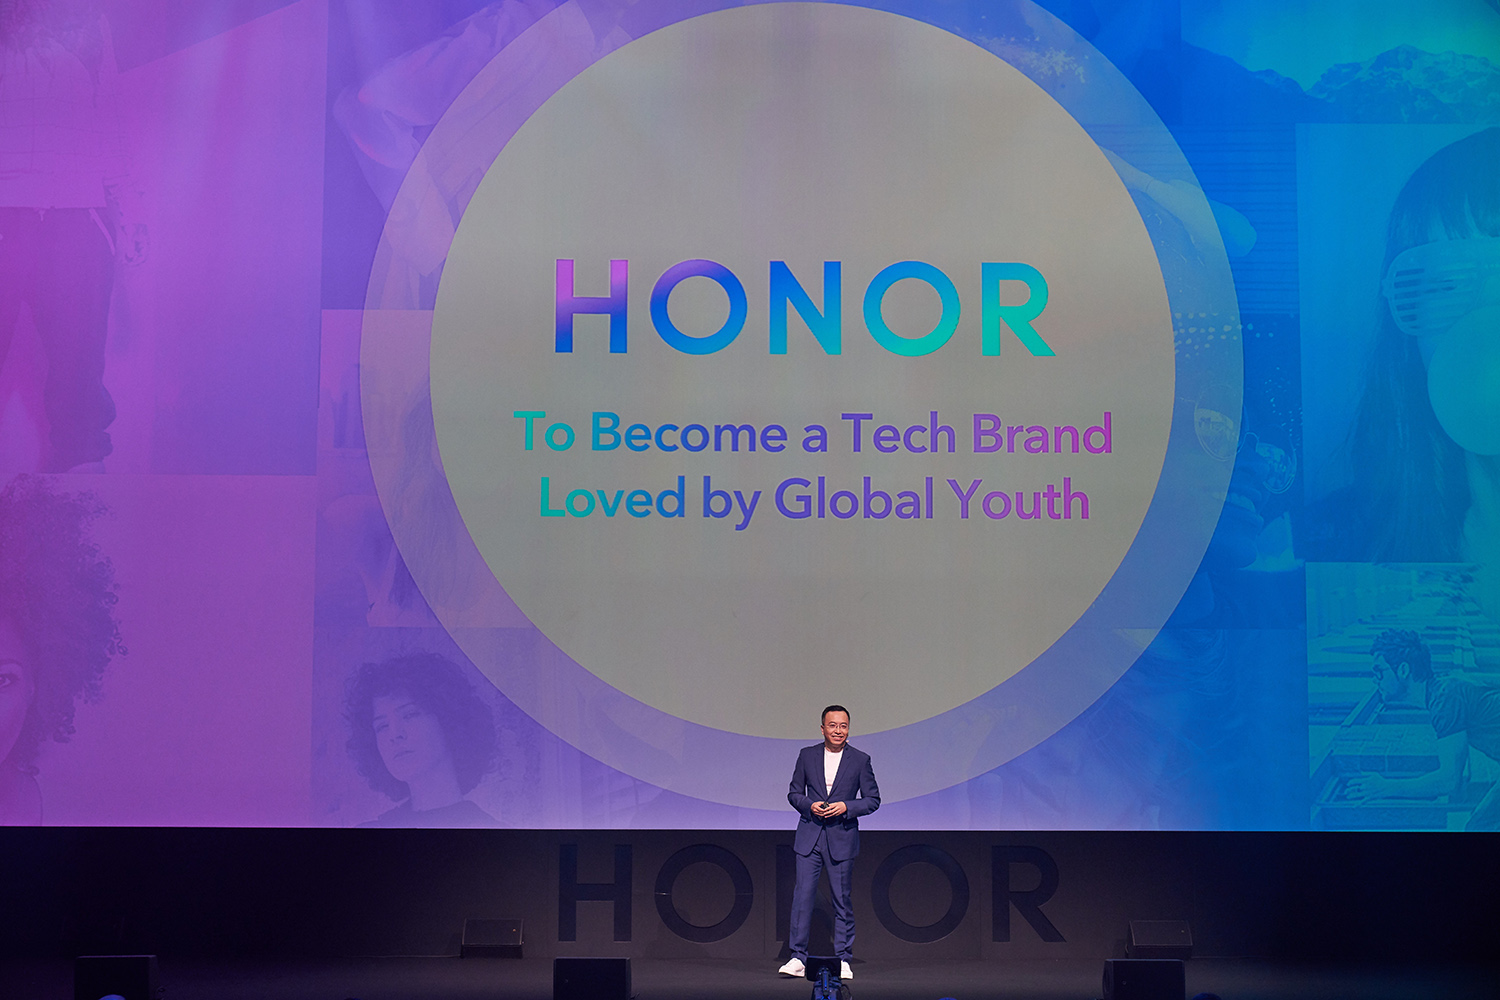 HONOR Brand Upgrade Will Supercharge Business Growth